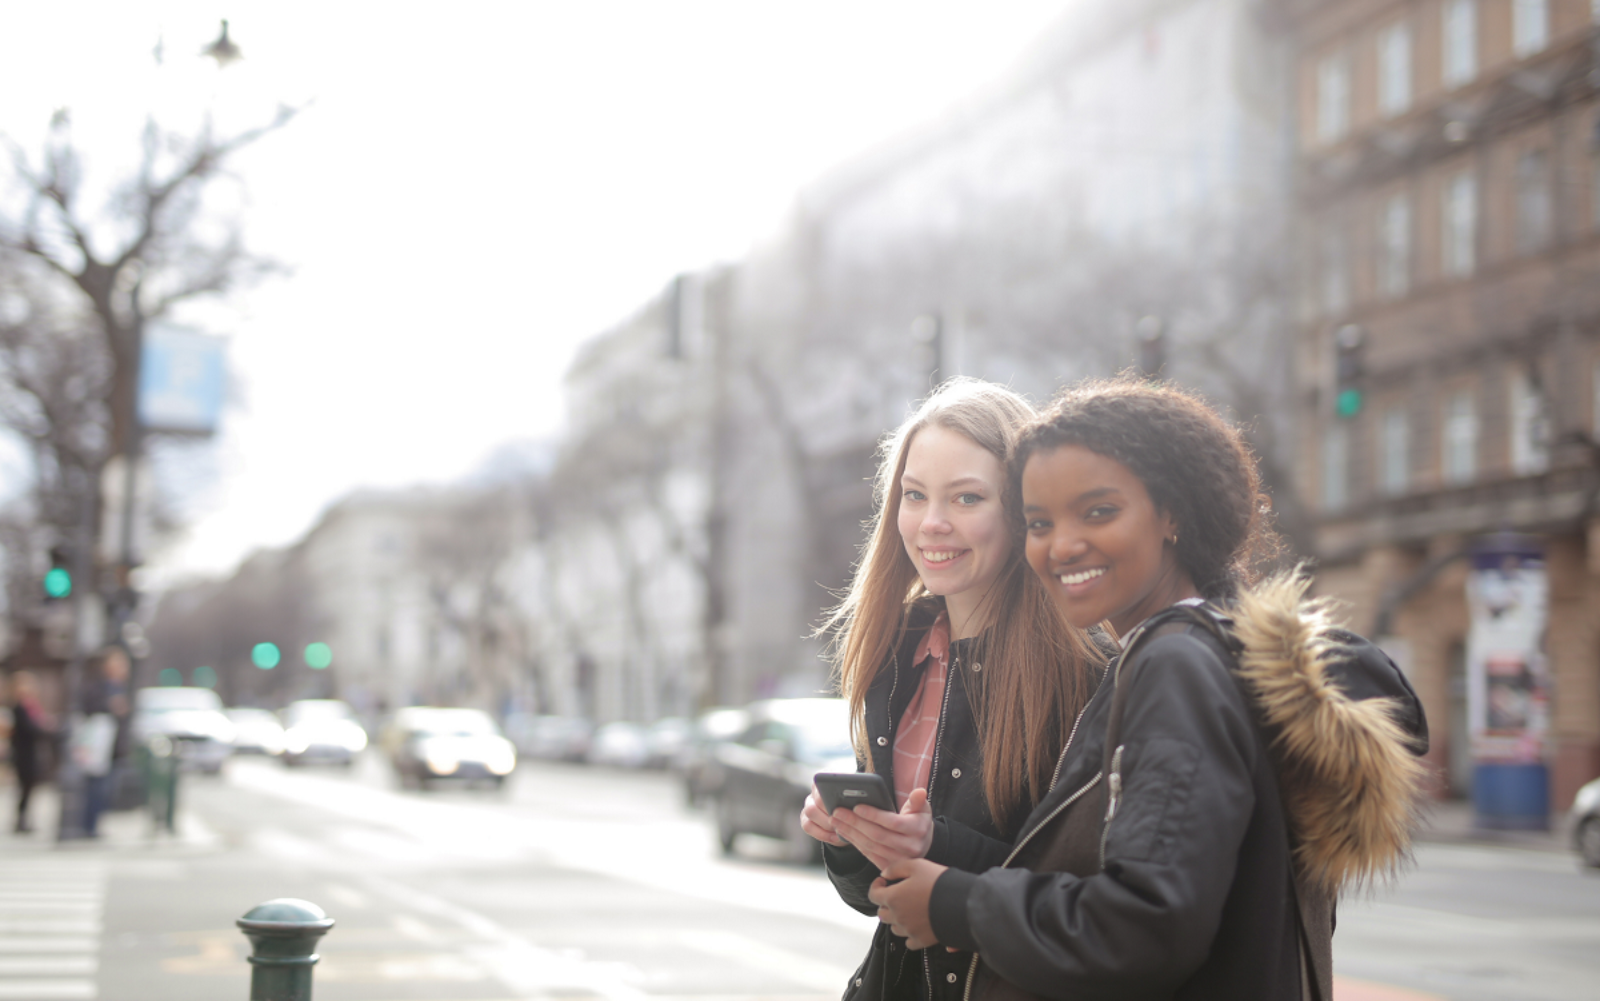 two young women on street